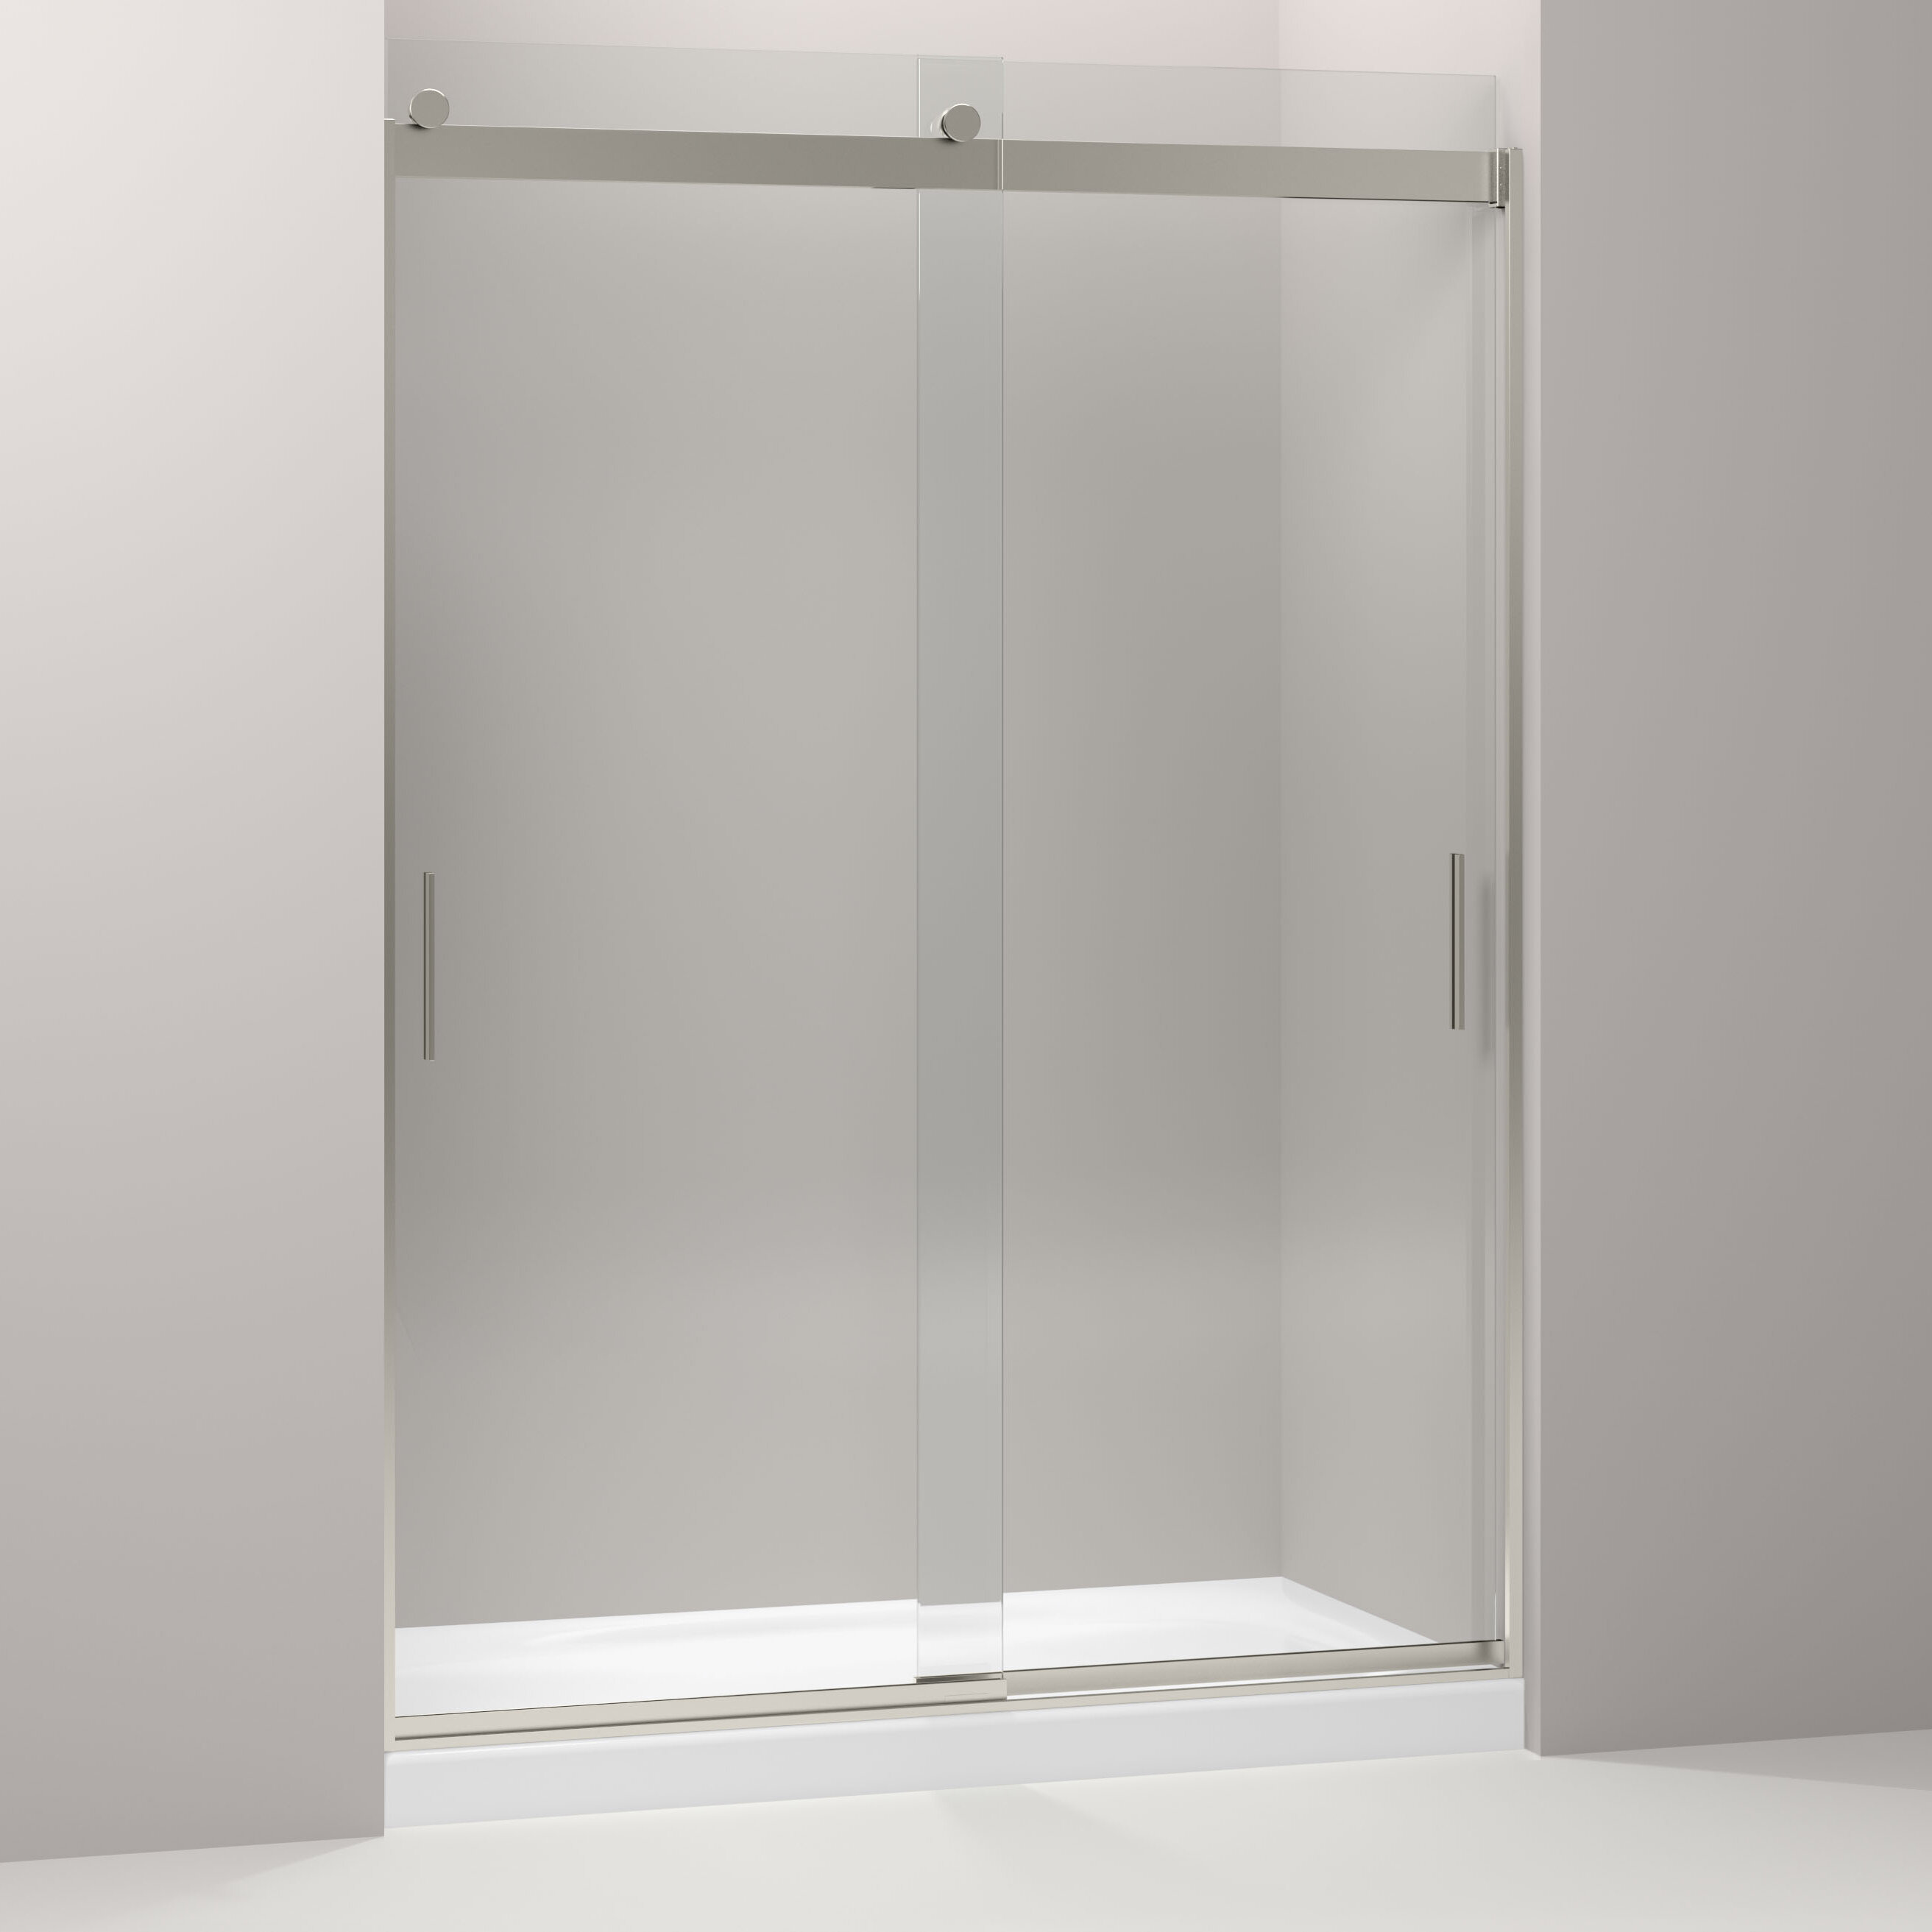 doors tub nj amg shower lucette slider sliding framed